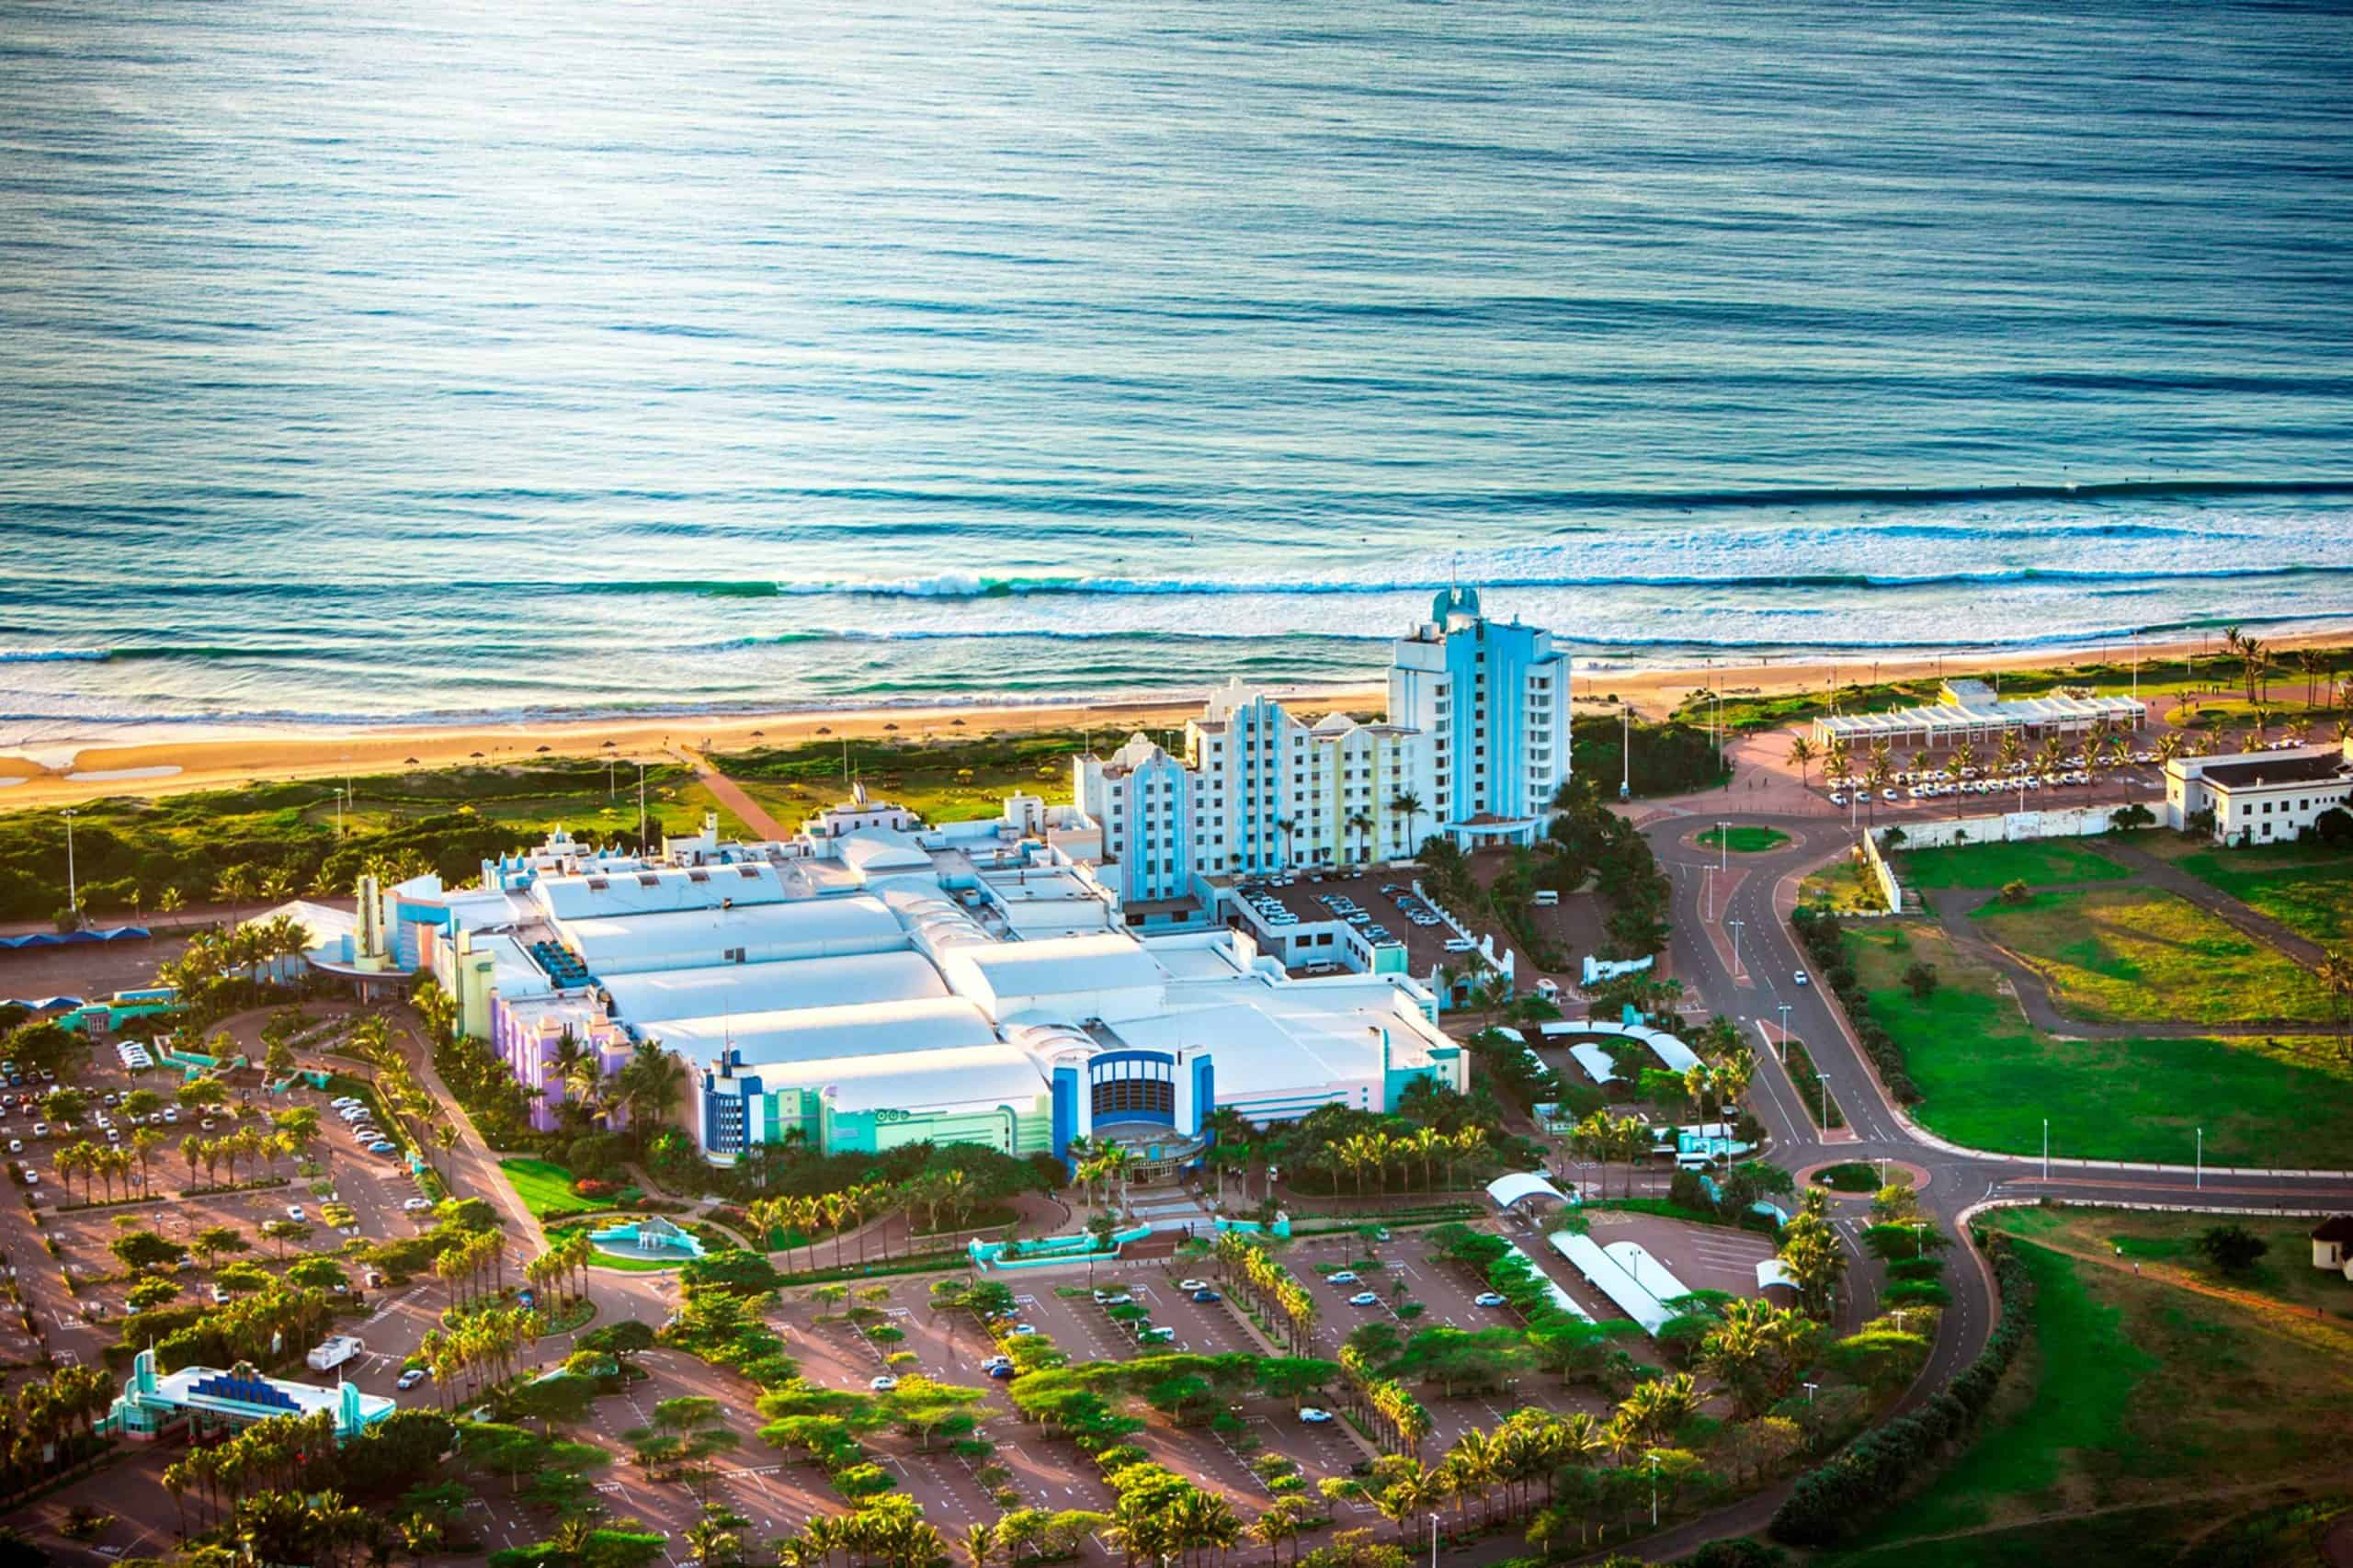 Suncoast Casino Aerial view